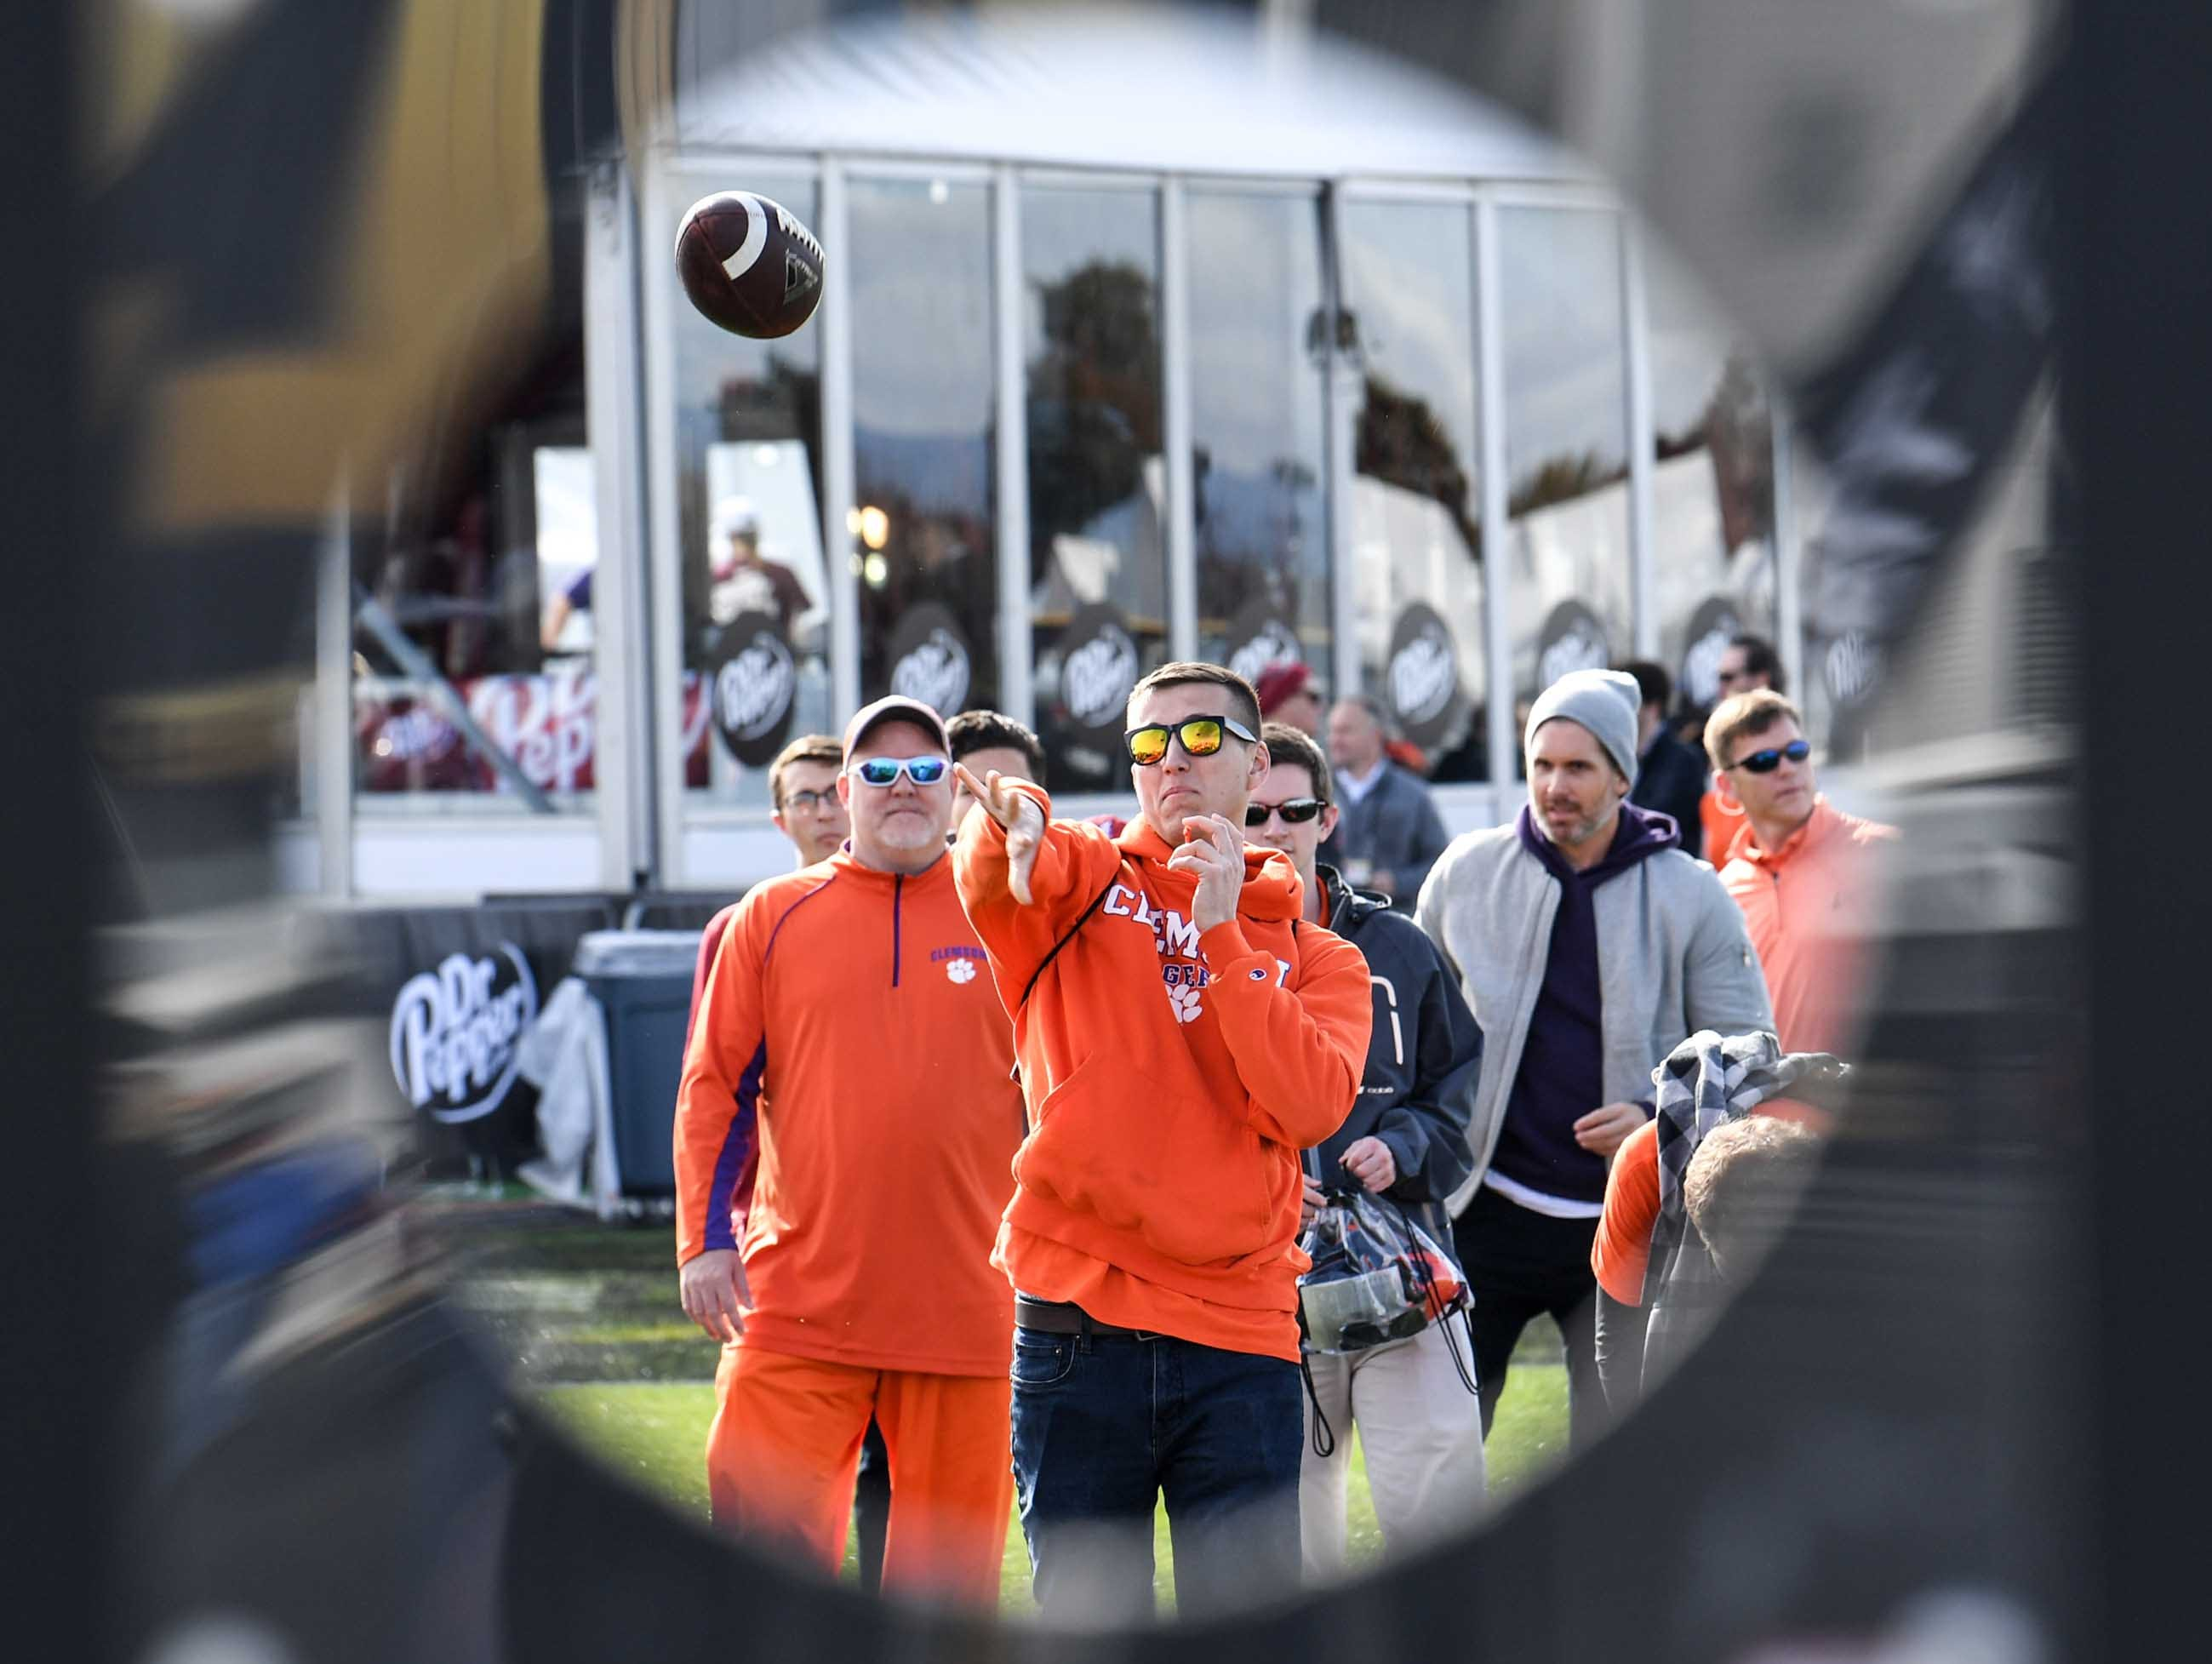 Clemson fan Matt Diener, class of 2017, of San Diego, tosses a football at the College Football Championship Playoff Tailgate outside Levi's Stadium in Santa Clara, California Monday, January 7, 2019.